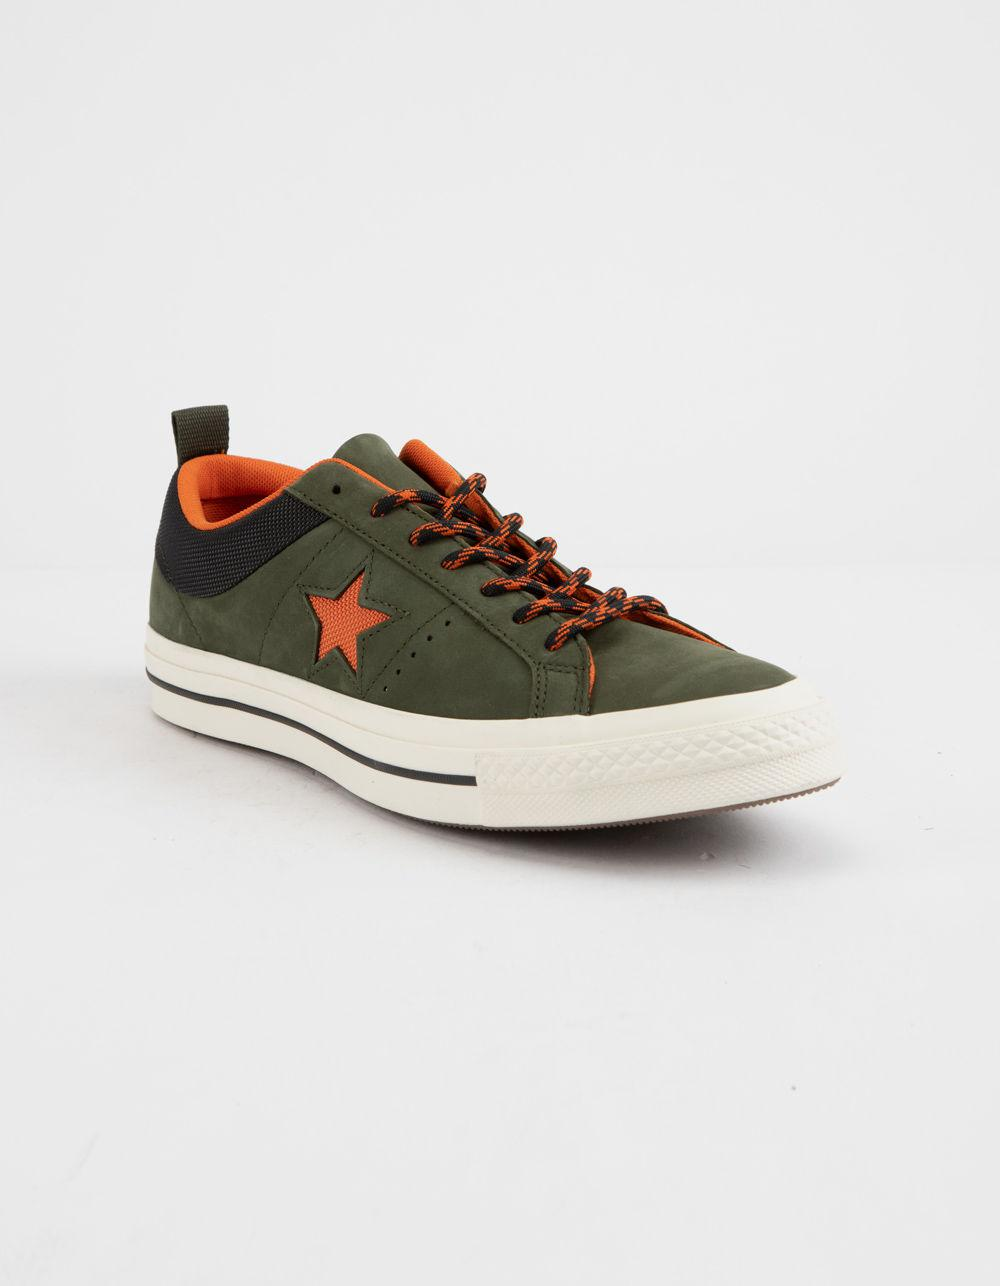 5072b480b668 Lyst - Converse One Star Ox Sierra Low Top Shoes in Green